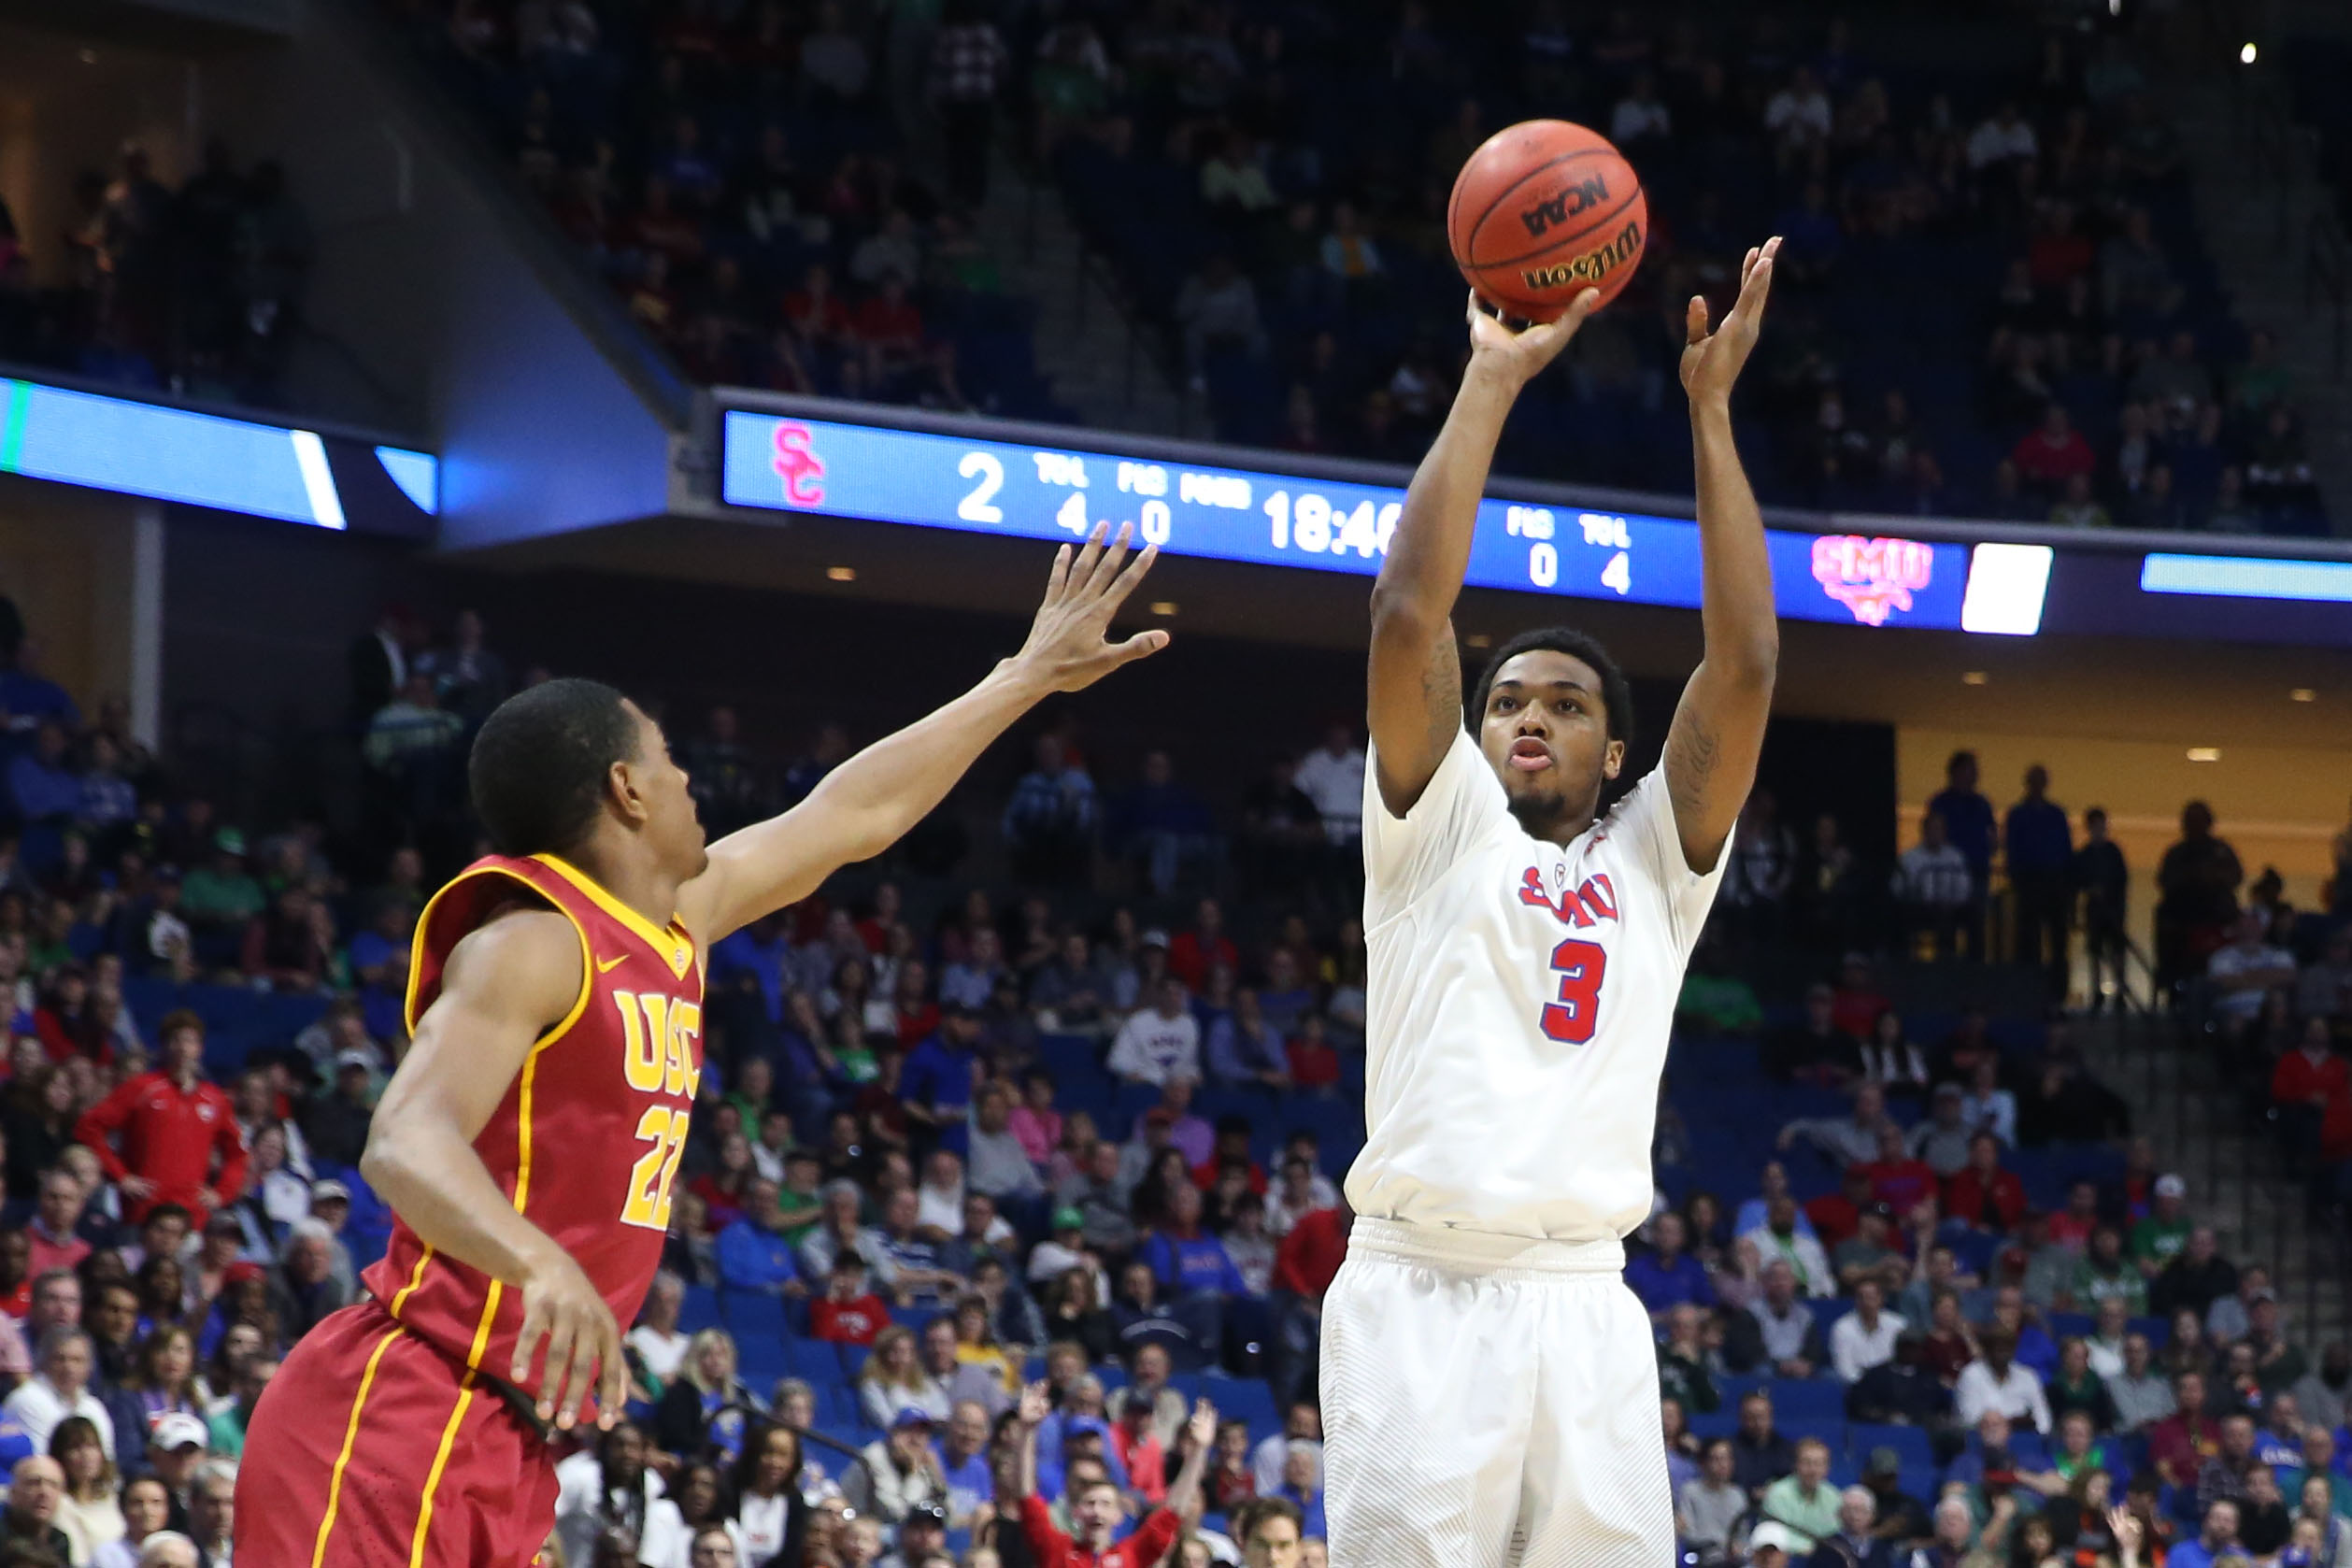 9950152-ncaa-basketball-ncaa-tournament-first-round-smu-vs-usc